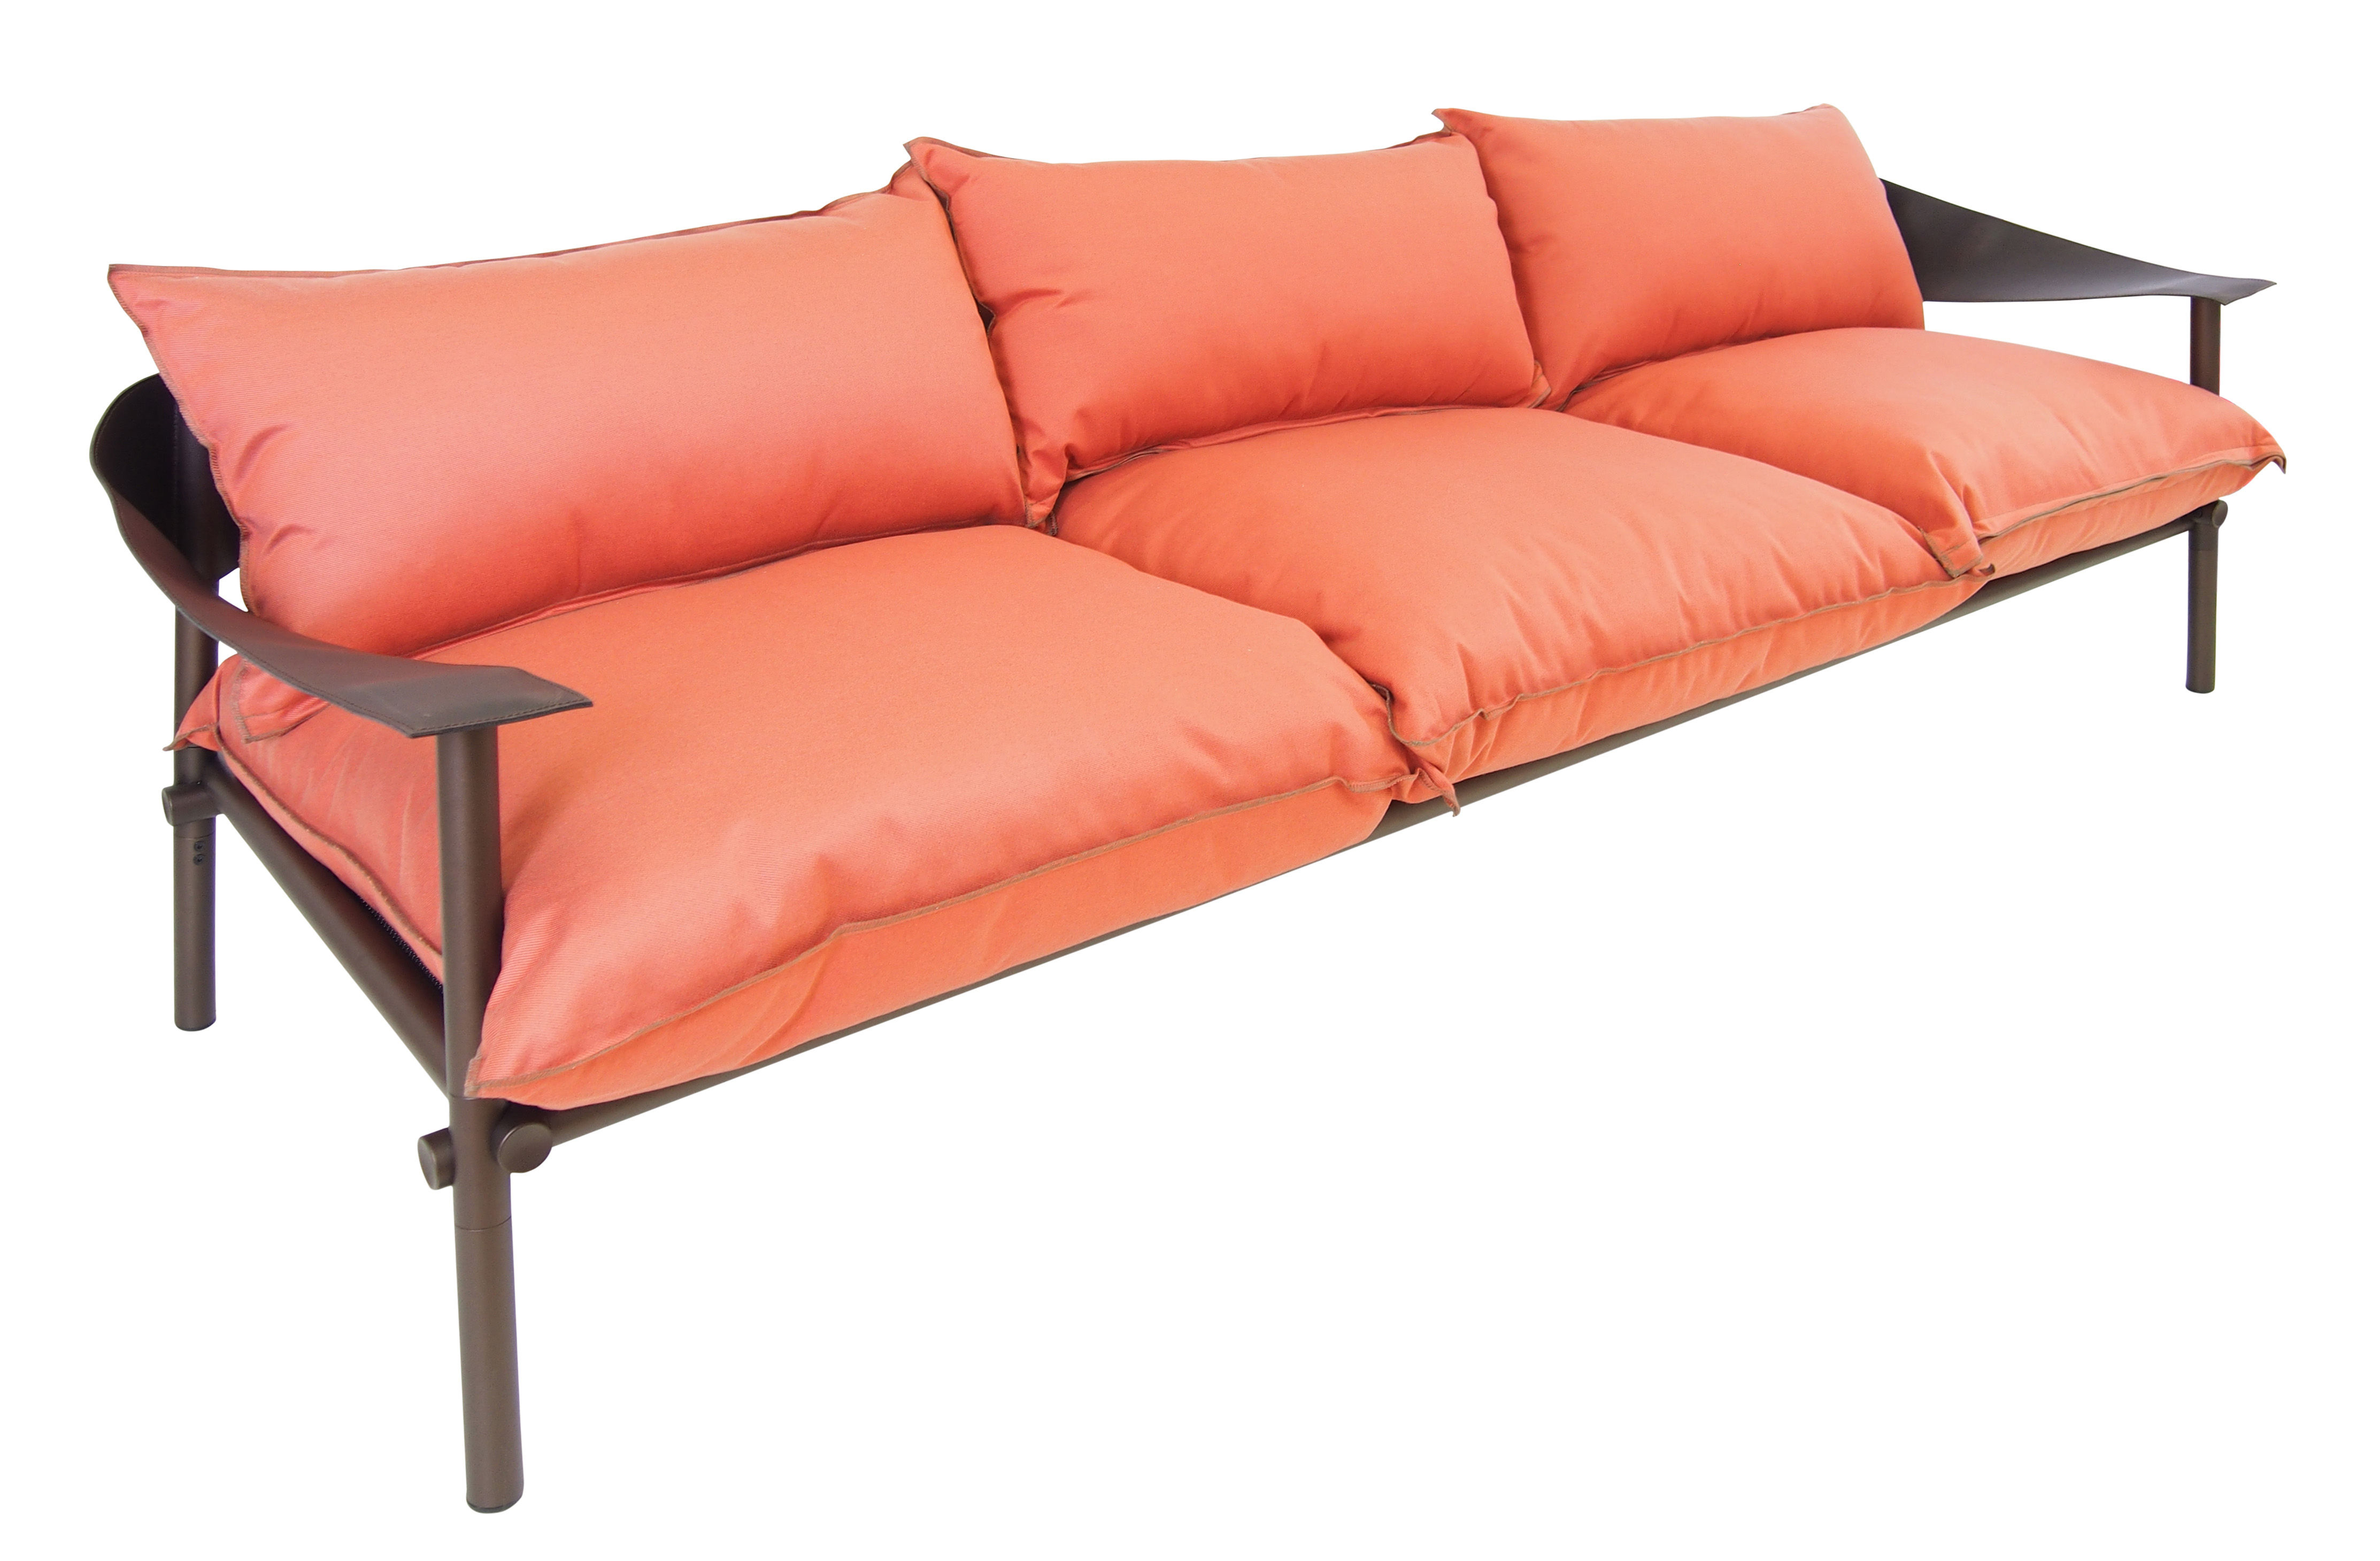 Canape Droit Terramare Emu Orange Similicuir Marron Structure